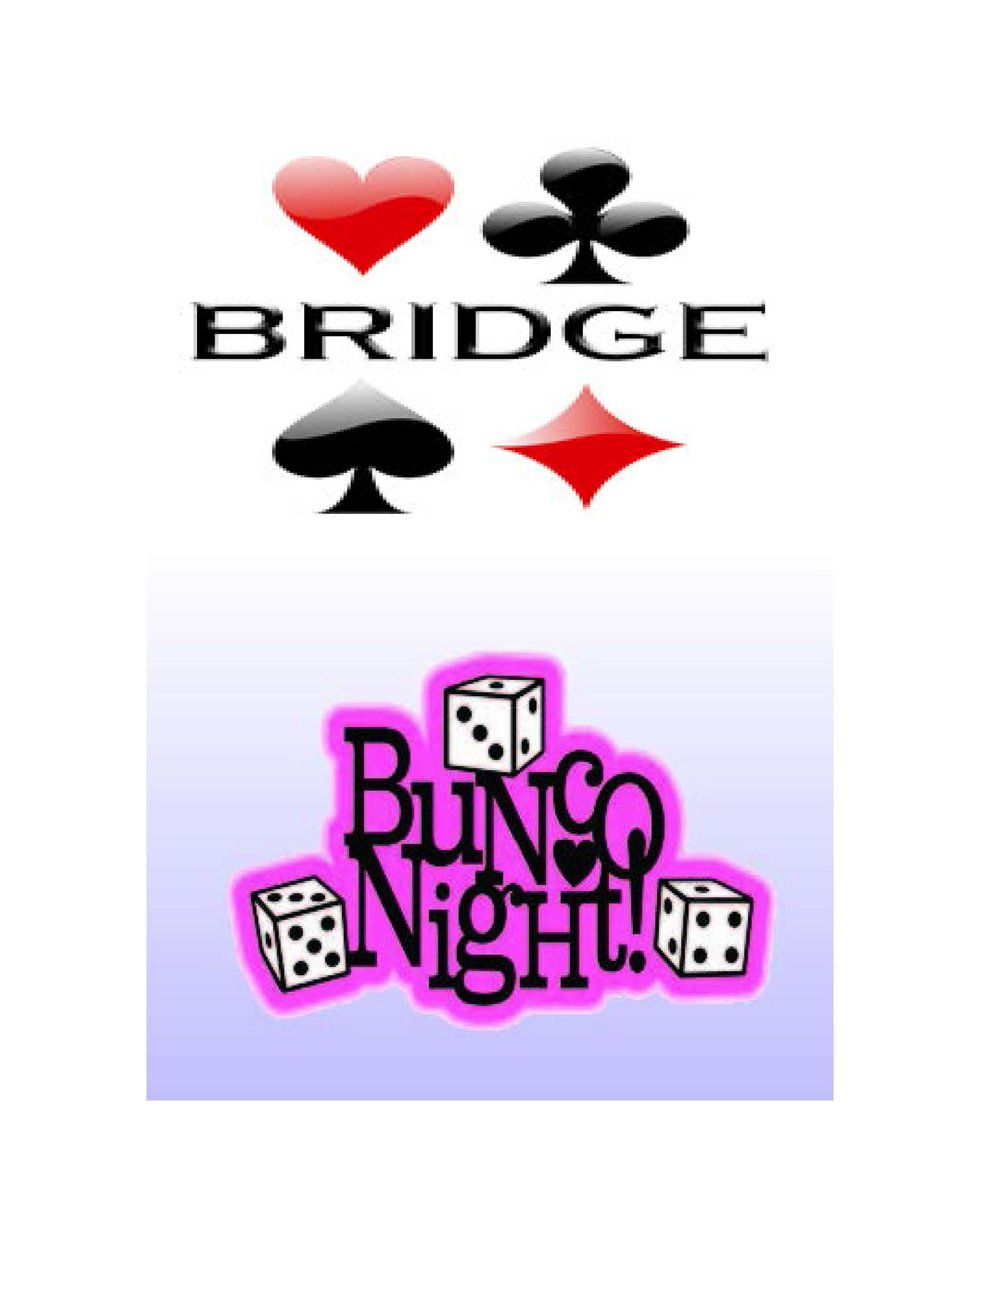 Bridge Bunco.jpg